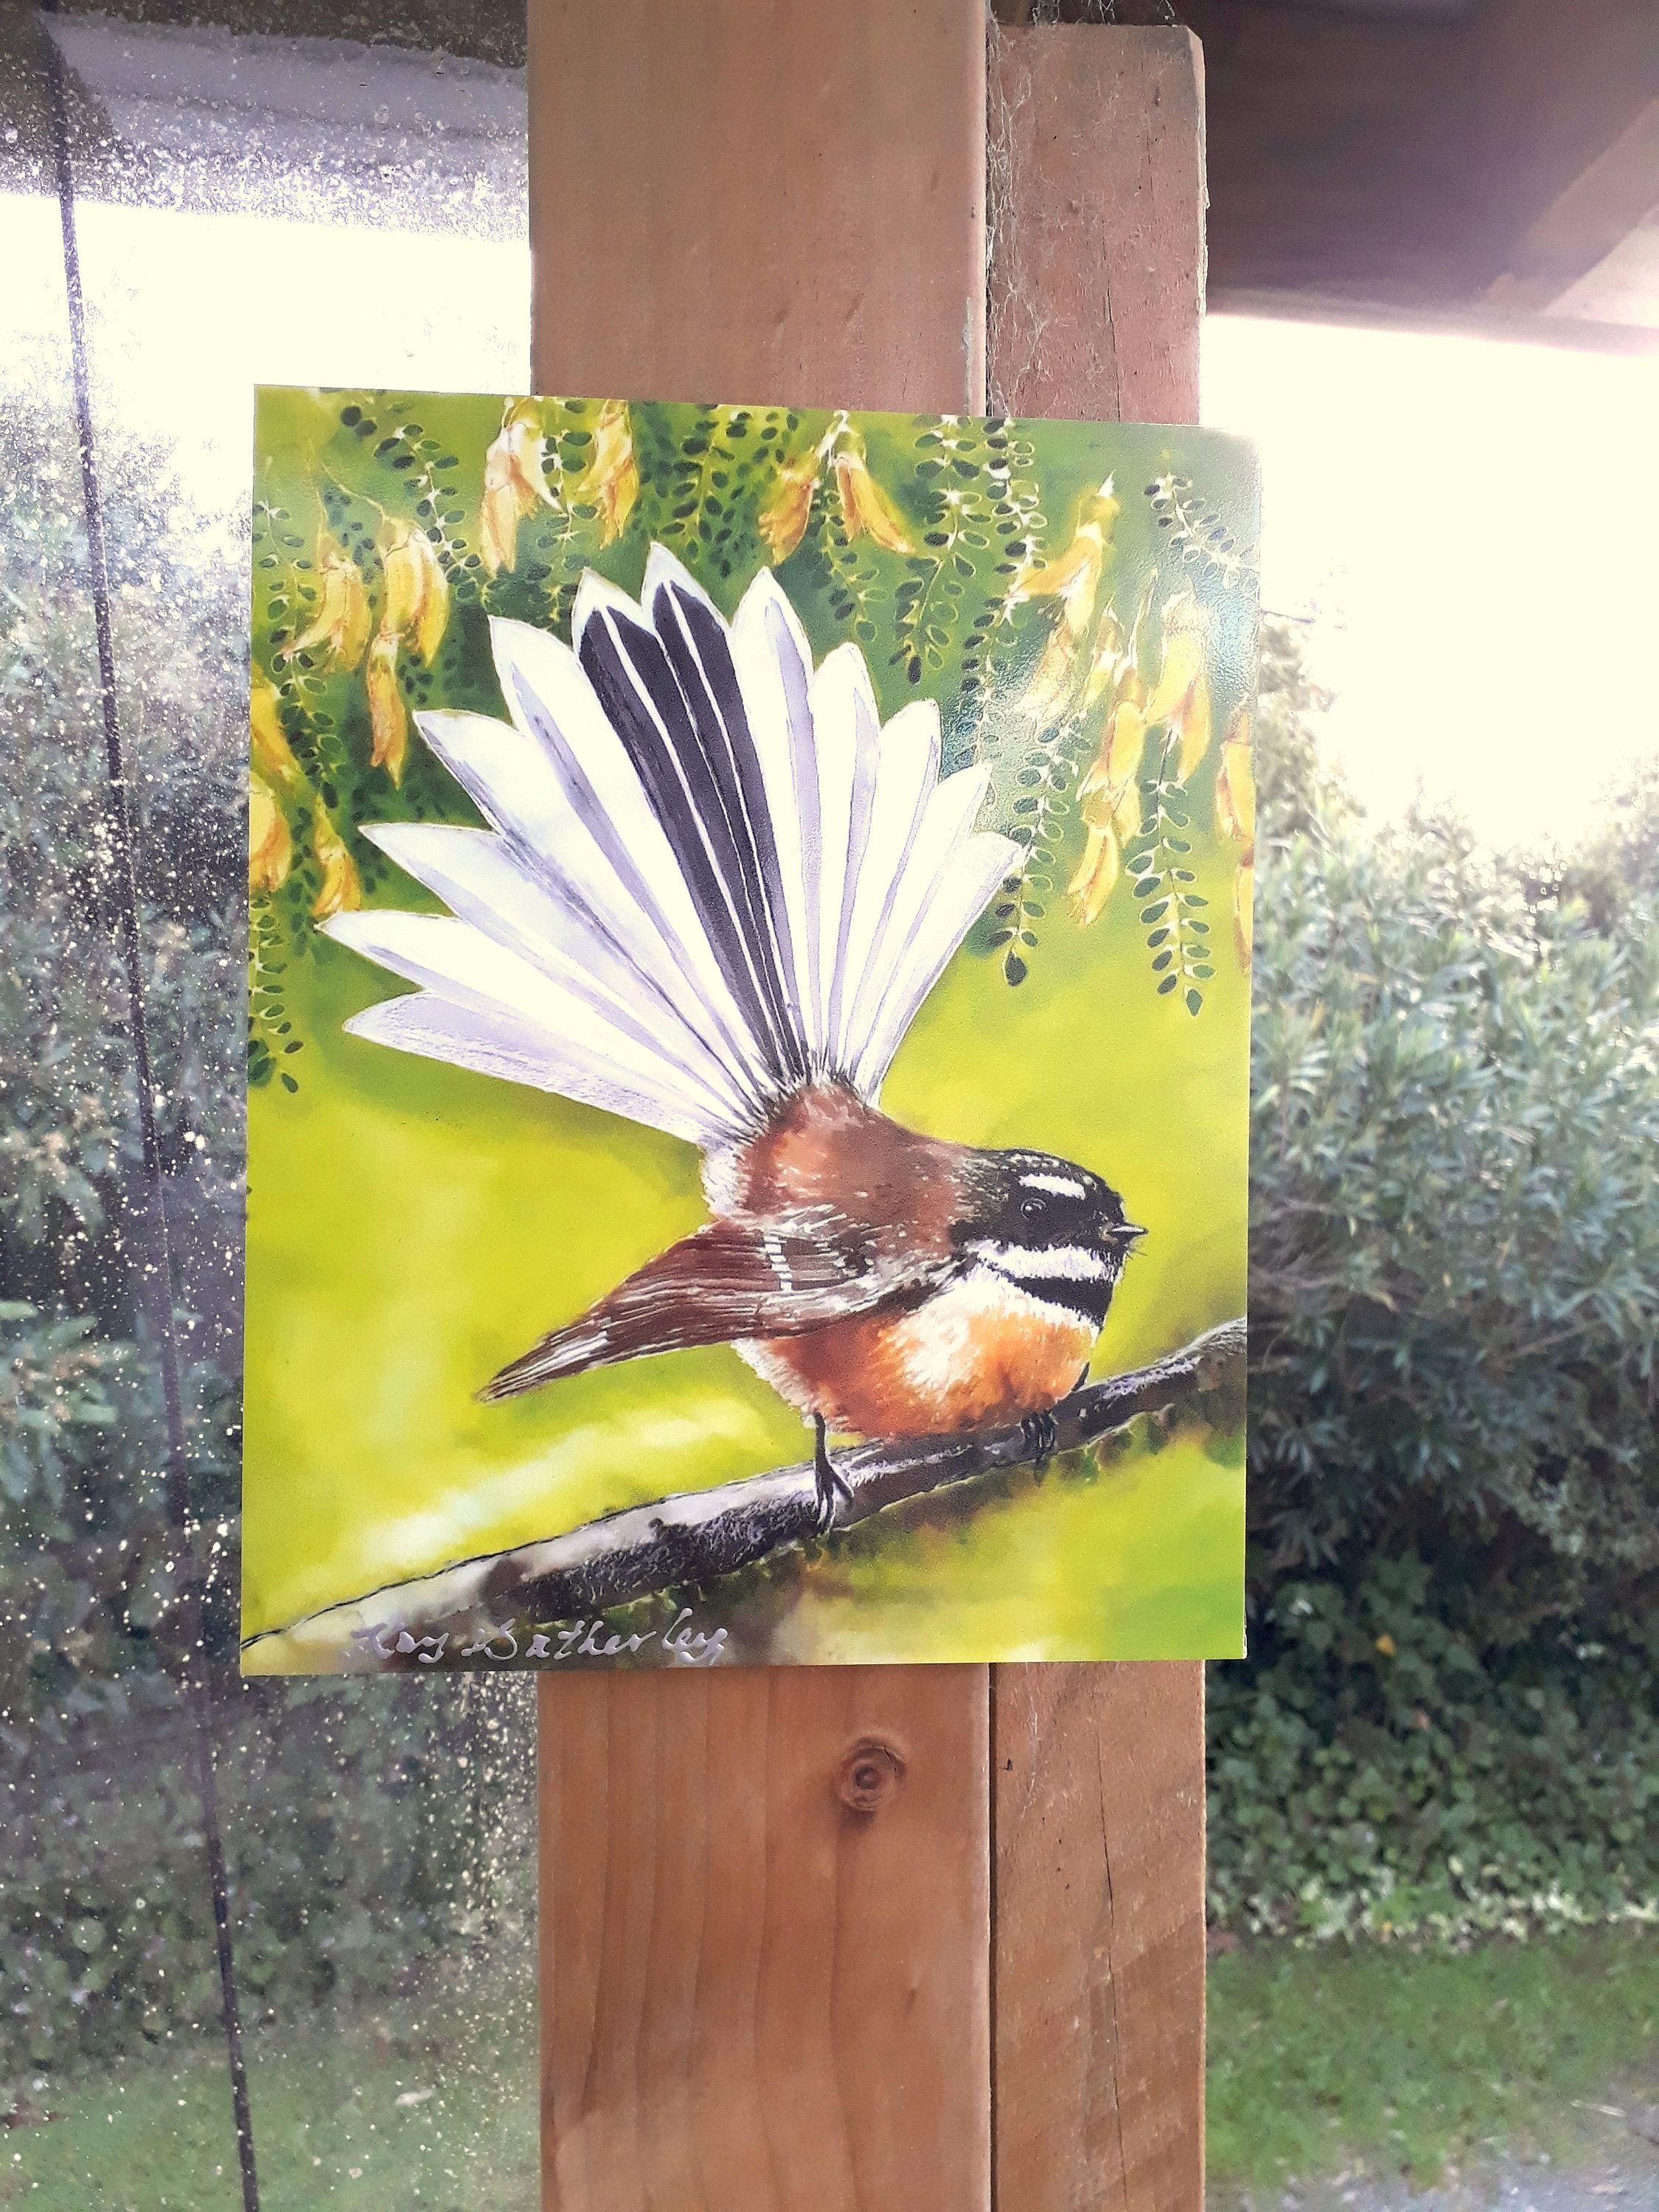 New Zealand FANTAIL BIRD, Outdoor Artwork, Outside art, Piwakawaka ...